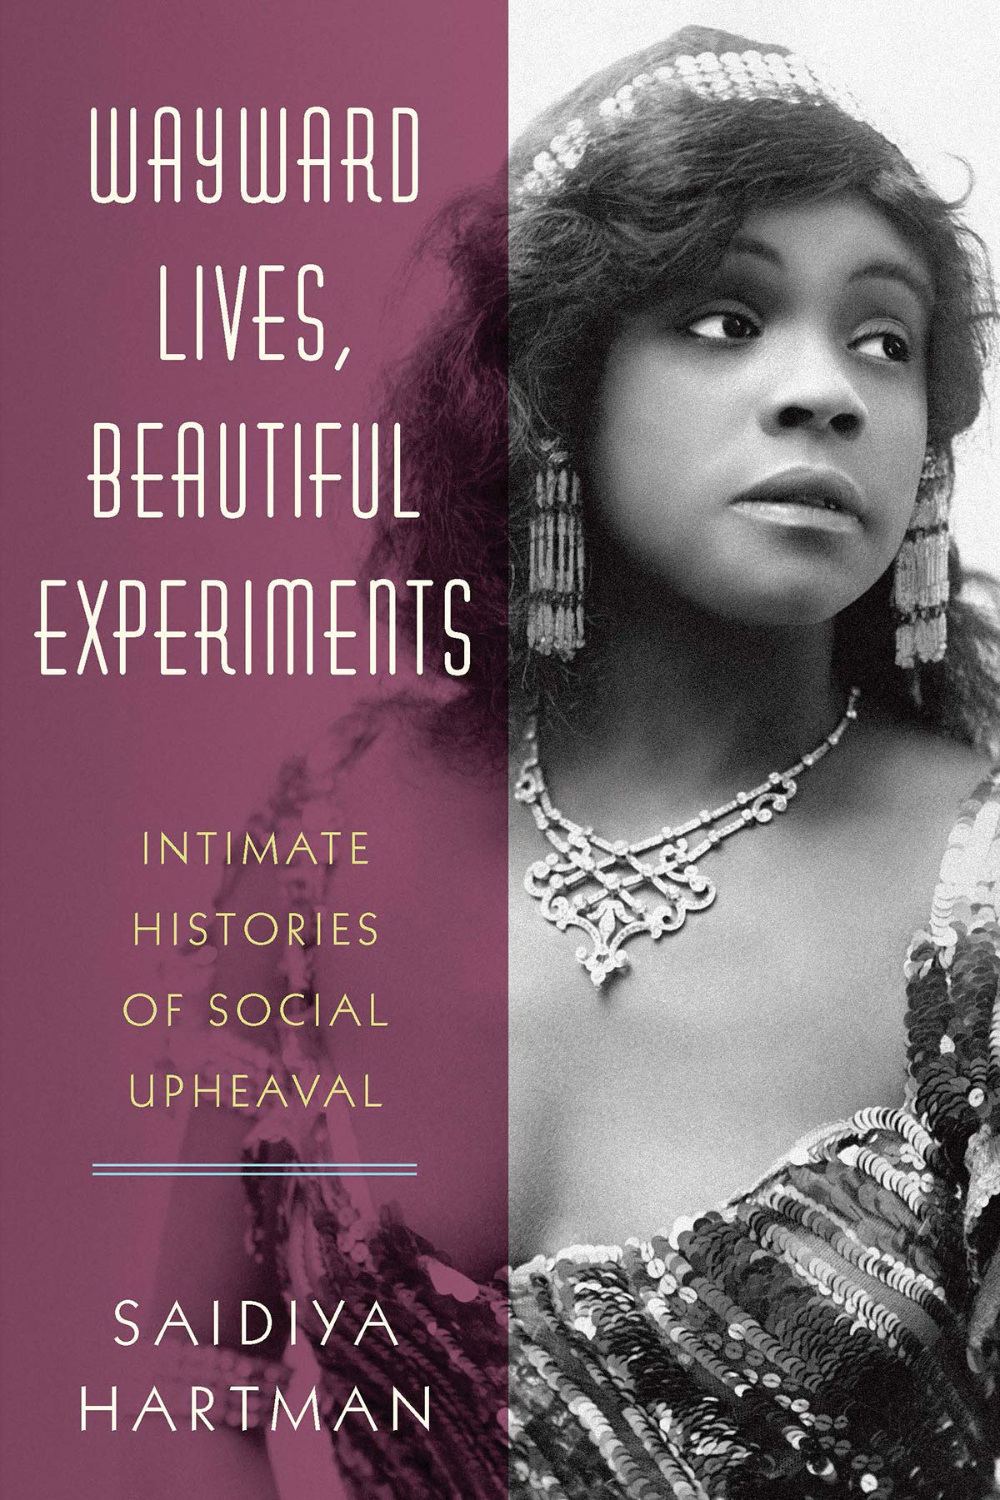 Wayward Lives, Beautiful Experiments_ Intimate Histories of Social Upheaval_ Hartman, Saidiya_ 9780393285673_ Amazon_com_ Books